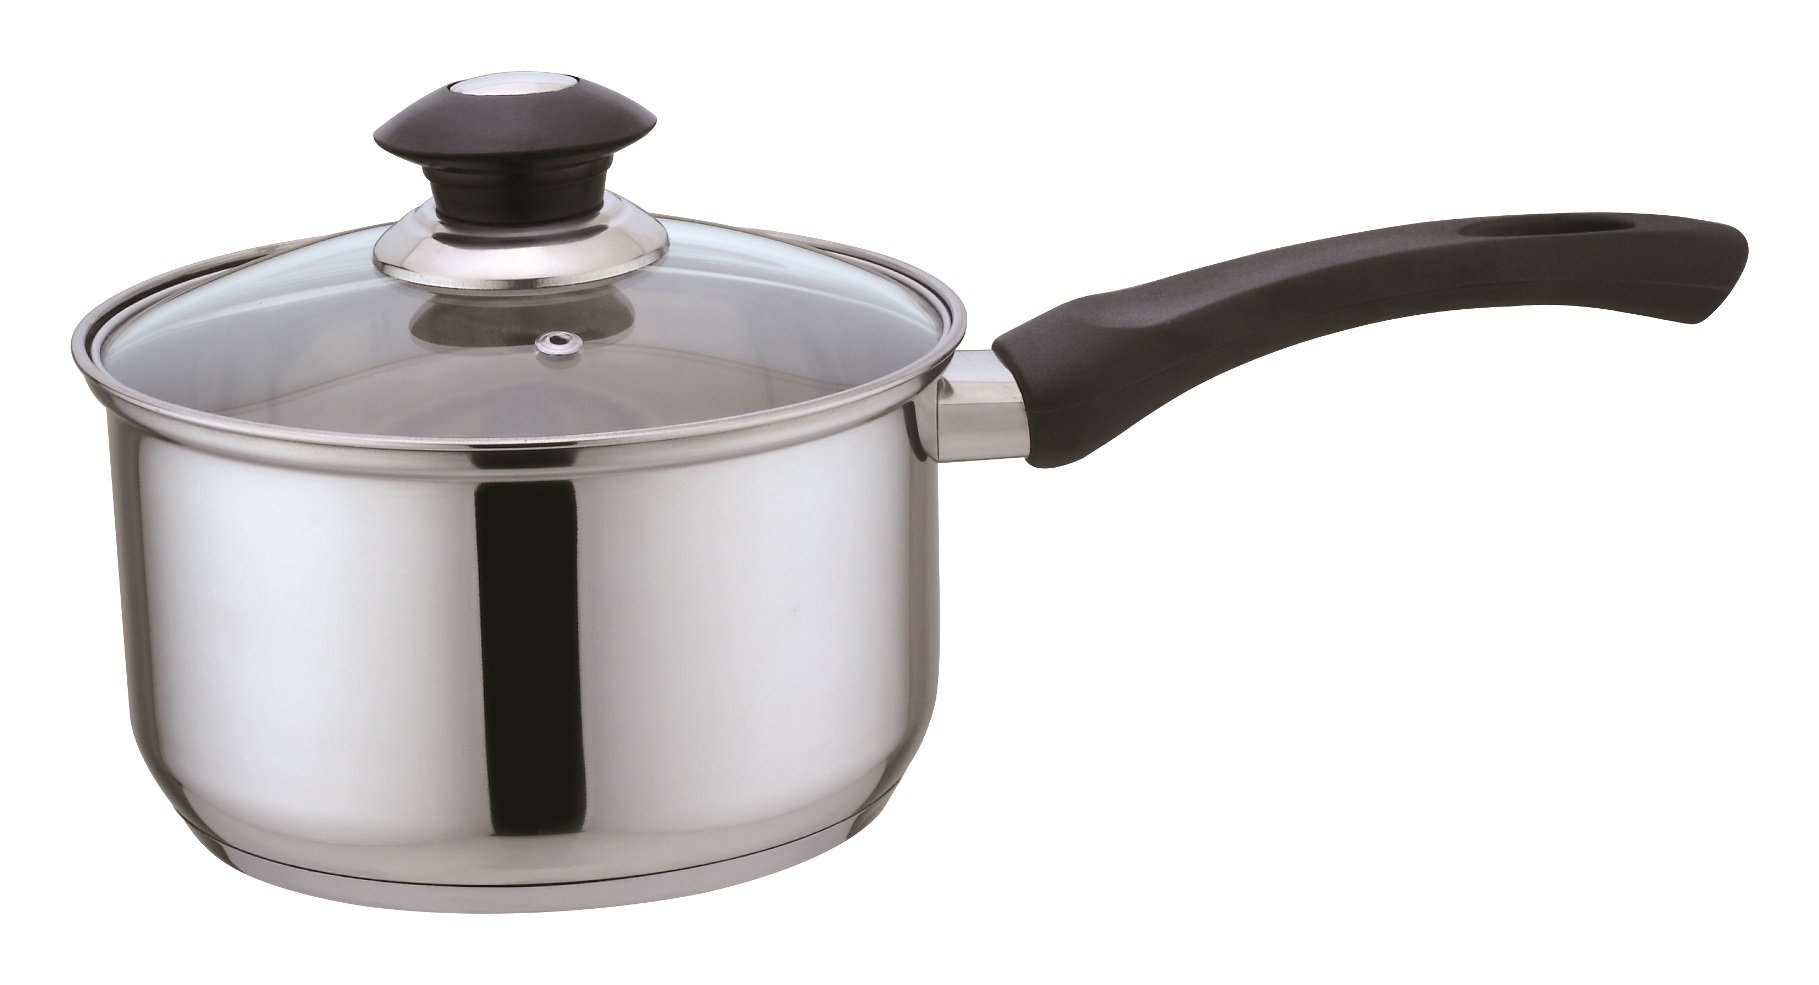 Kitchen Sence Stainless Steel Sauce Pan with Glass Lid (1.2 Quart)